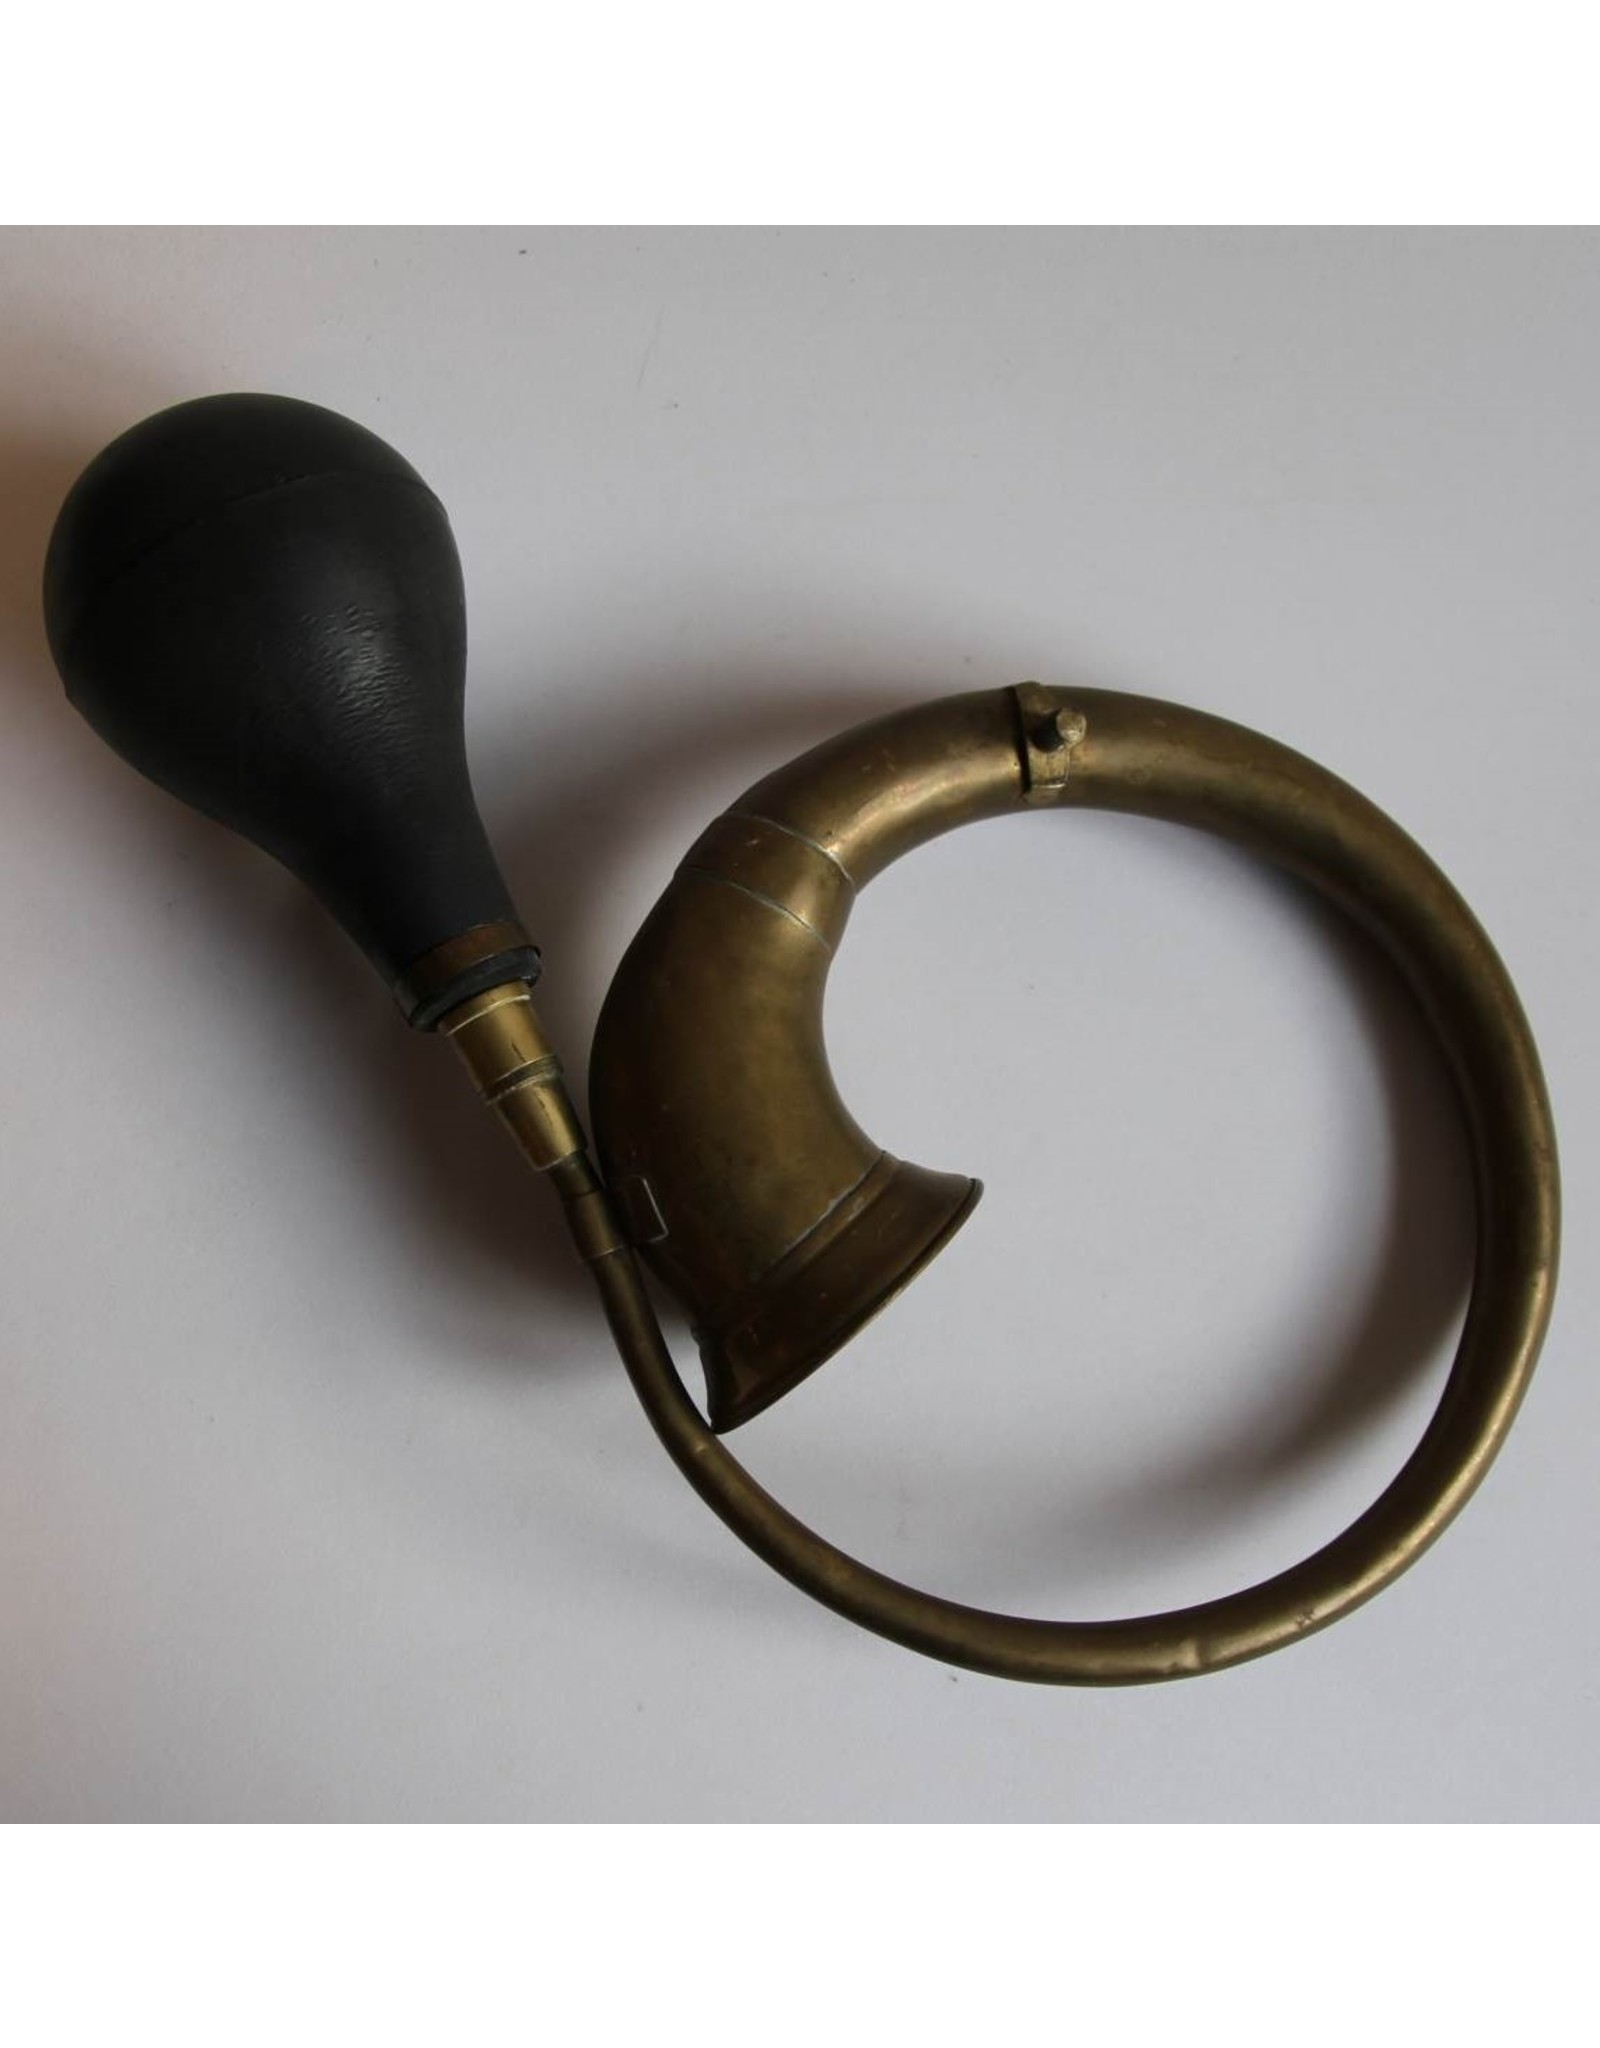 Car horn - brass with rubber bulb, curved